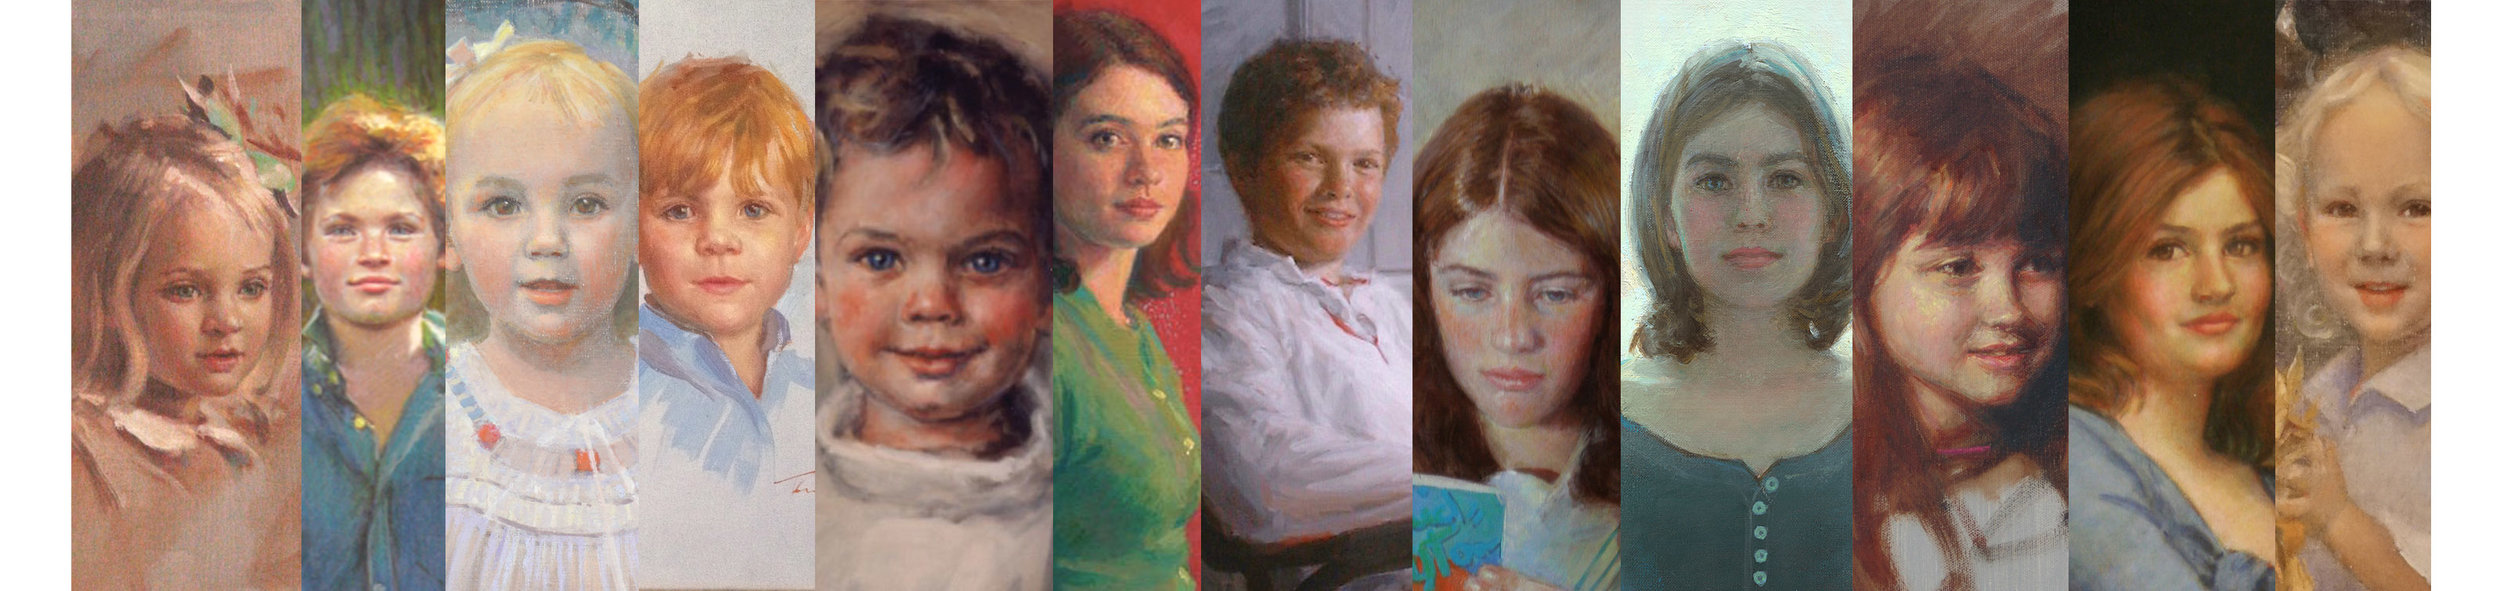 row of childrens portraits small 3.jpg